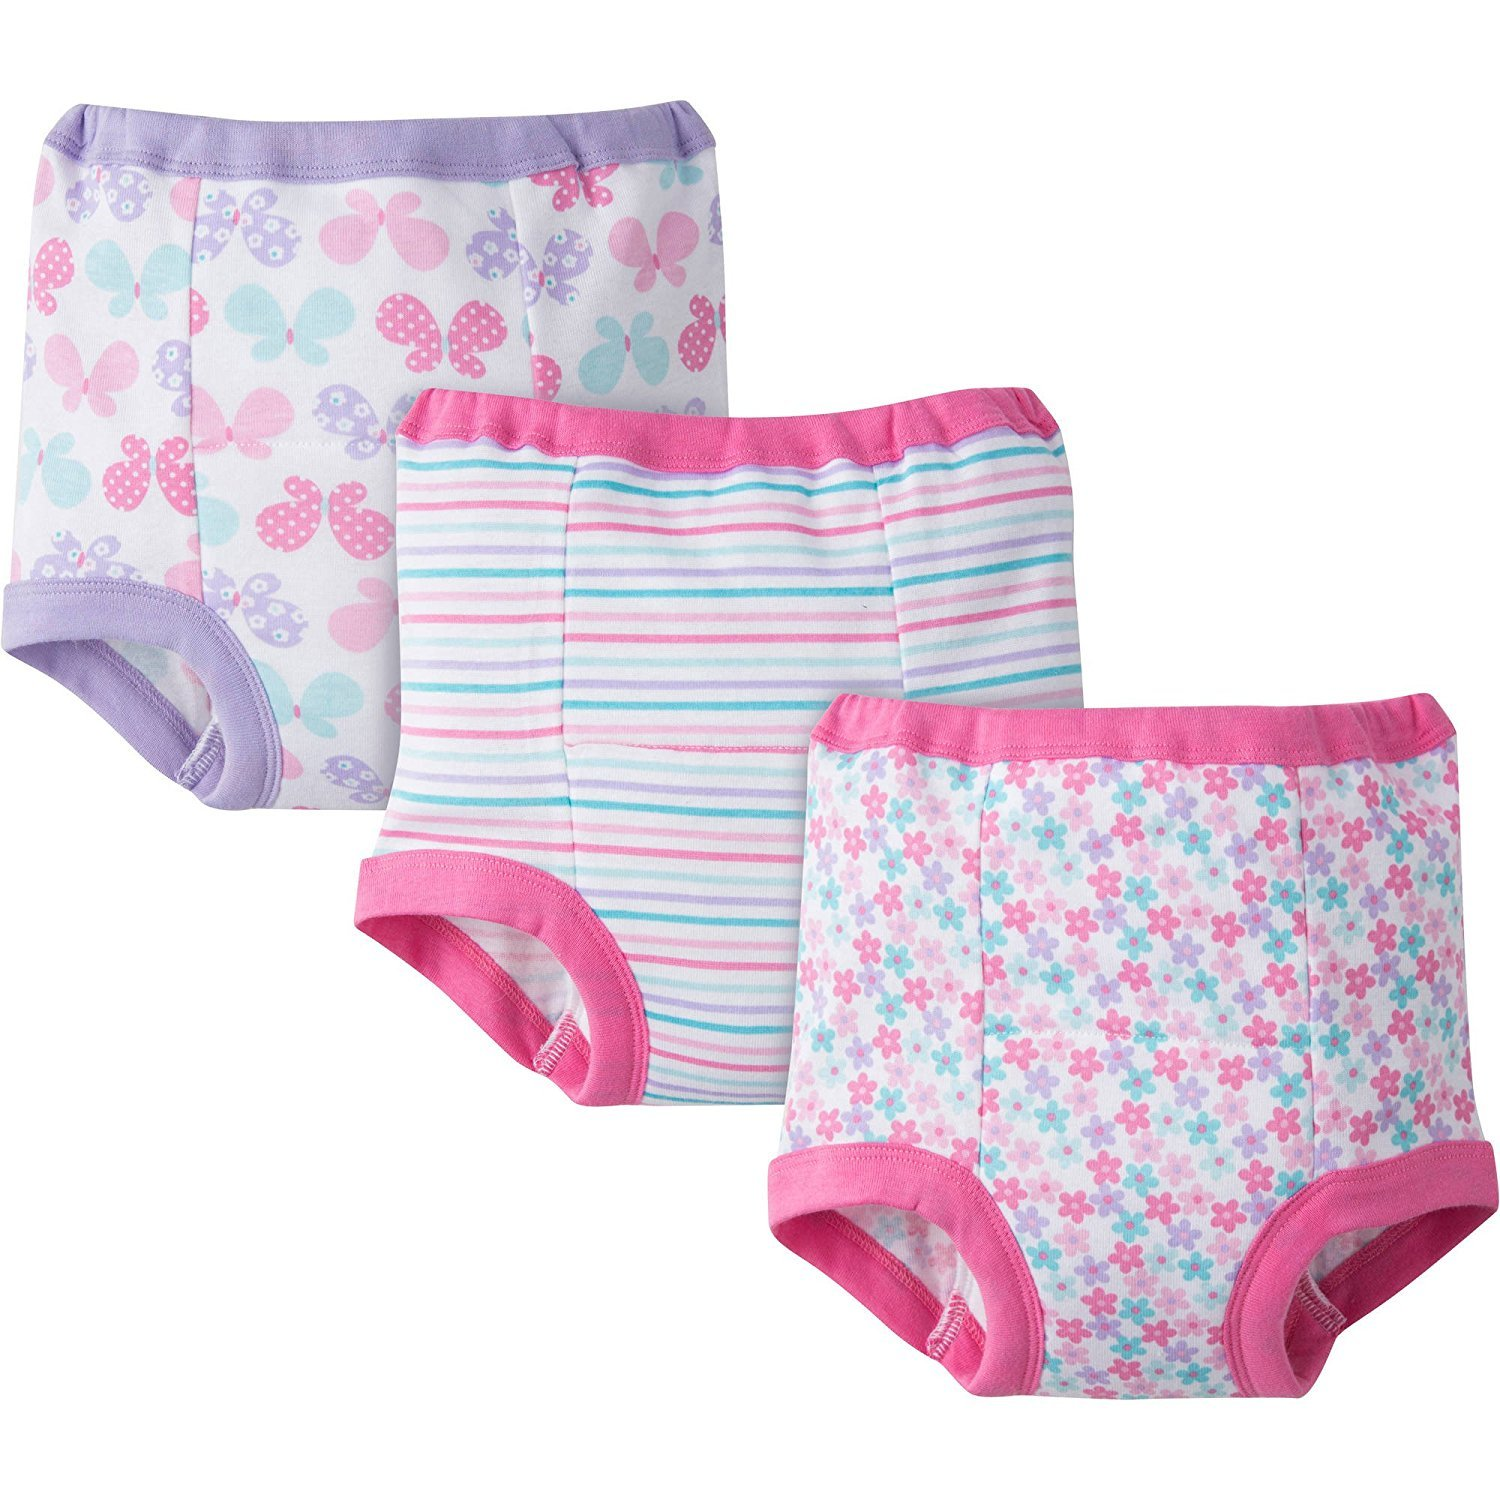 Gerber Baby Toddler Girl Training Pants,Pastels Pinks, 3-Pack